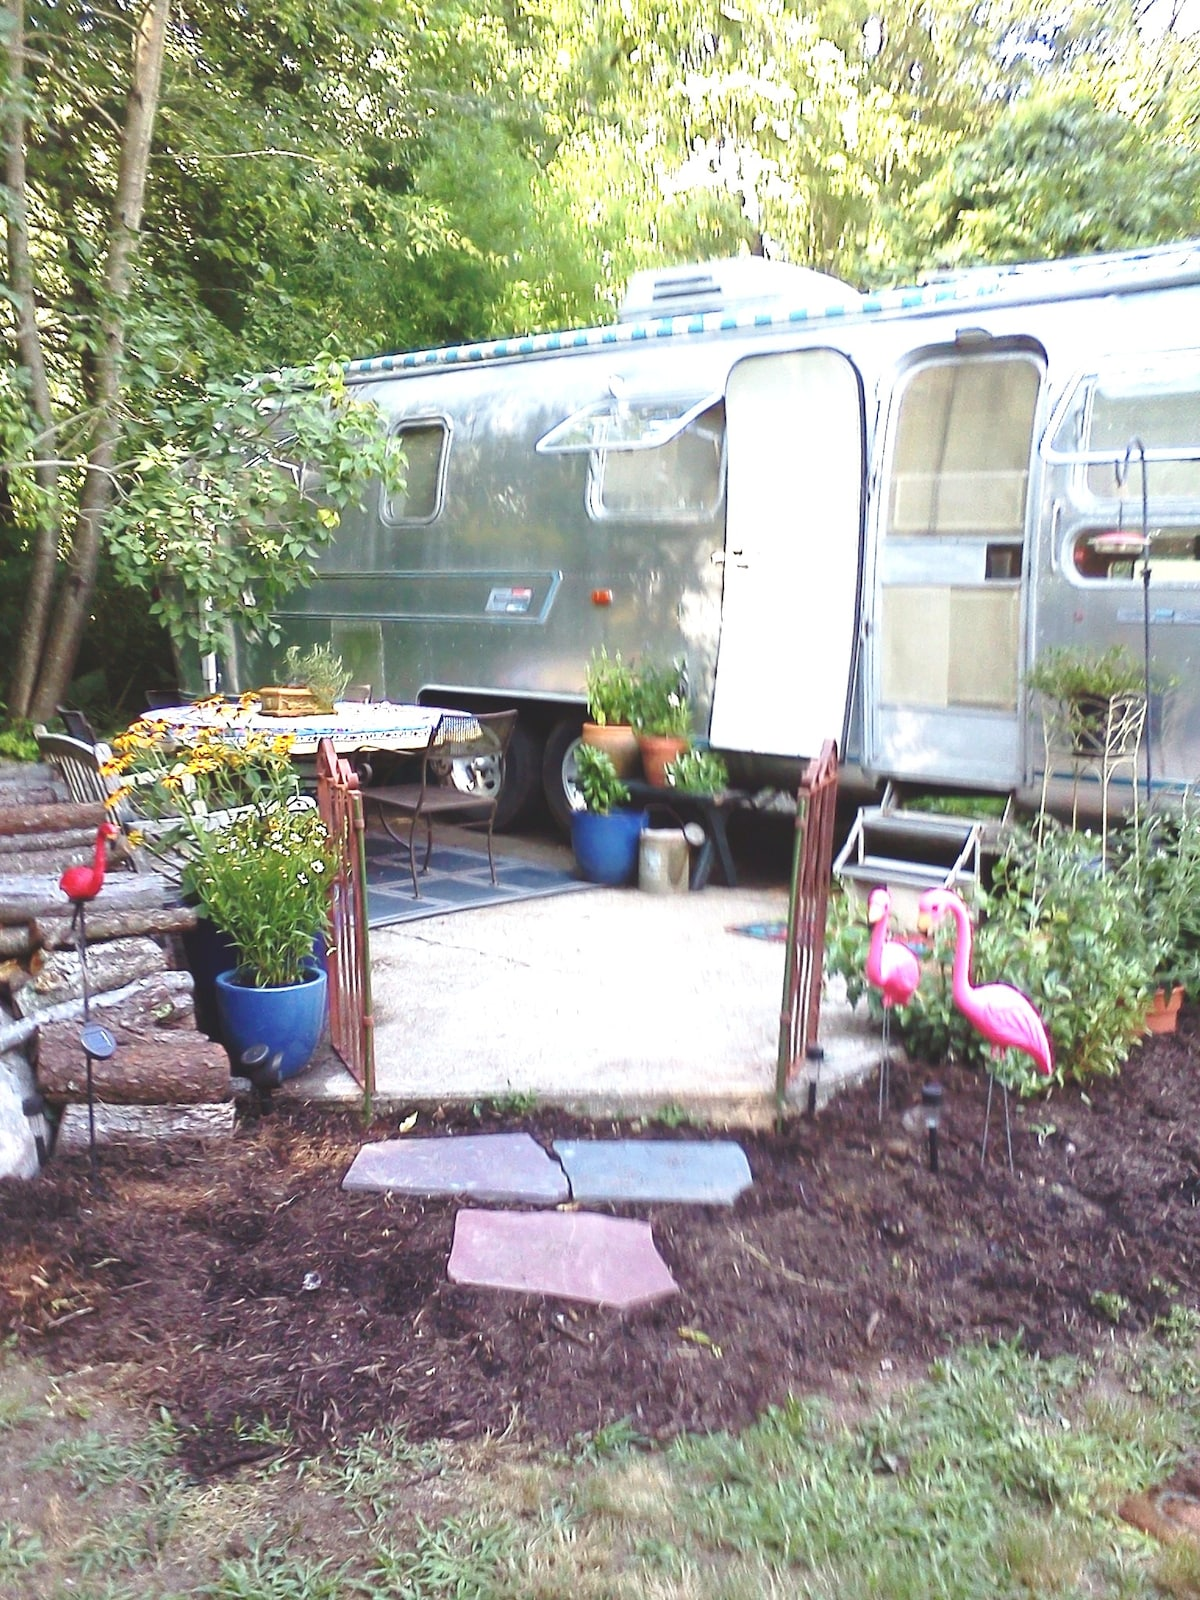 1975 Refurbished Airstream Trailer